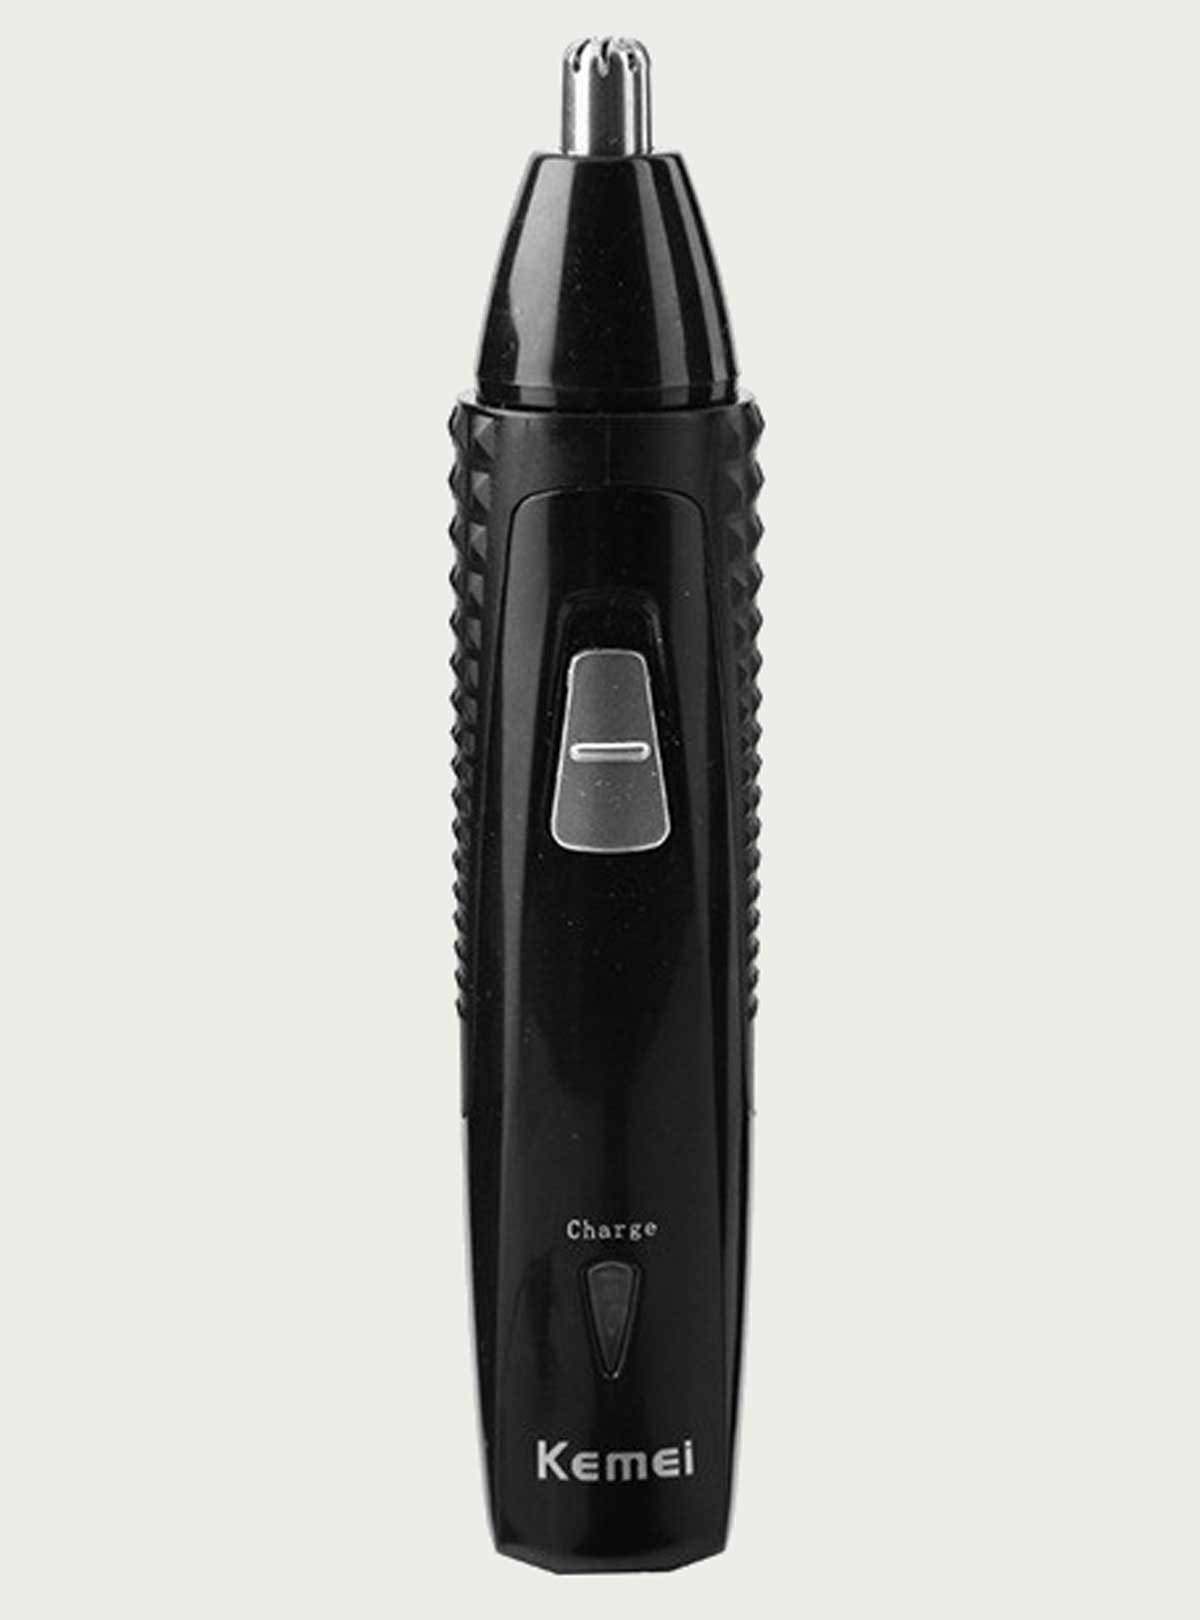 Kemei KM-309 Rechargeable Waterproof 3 in 1 Nose and Ear Trimmer